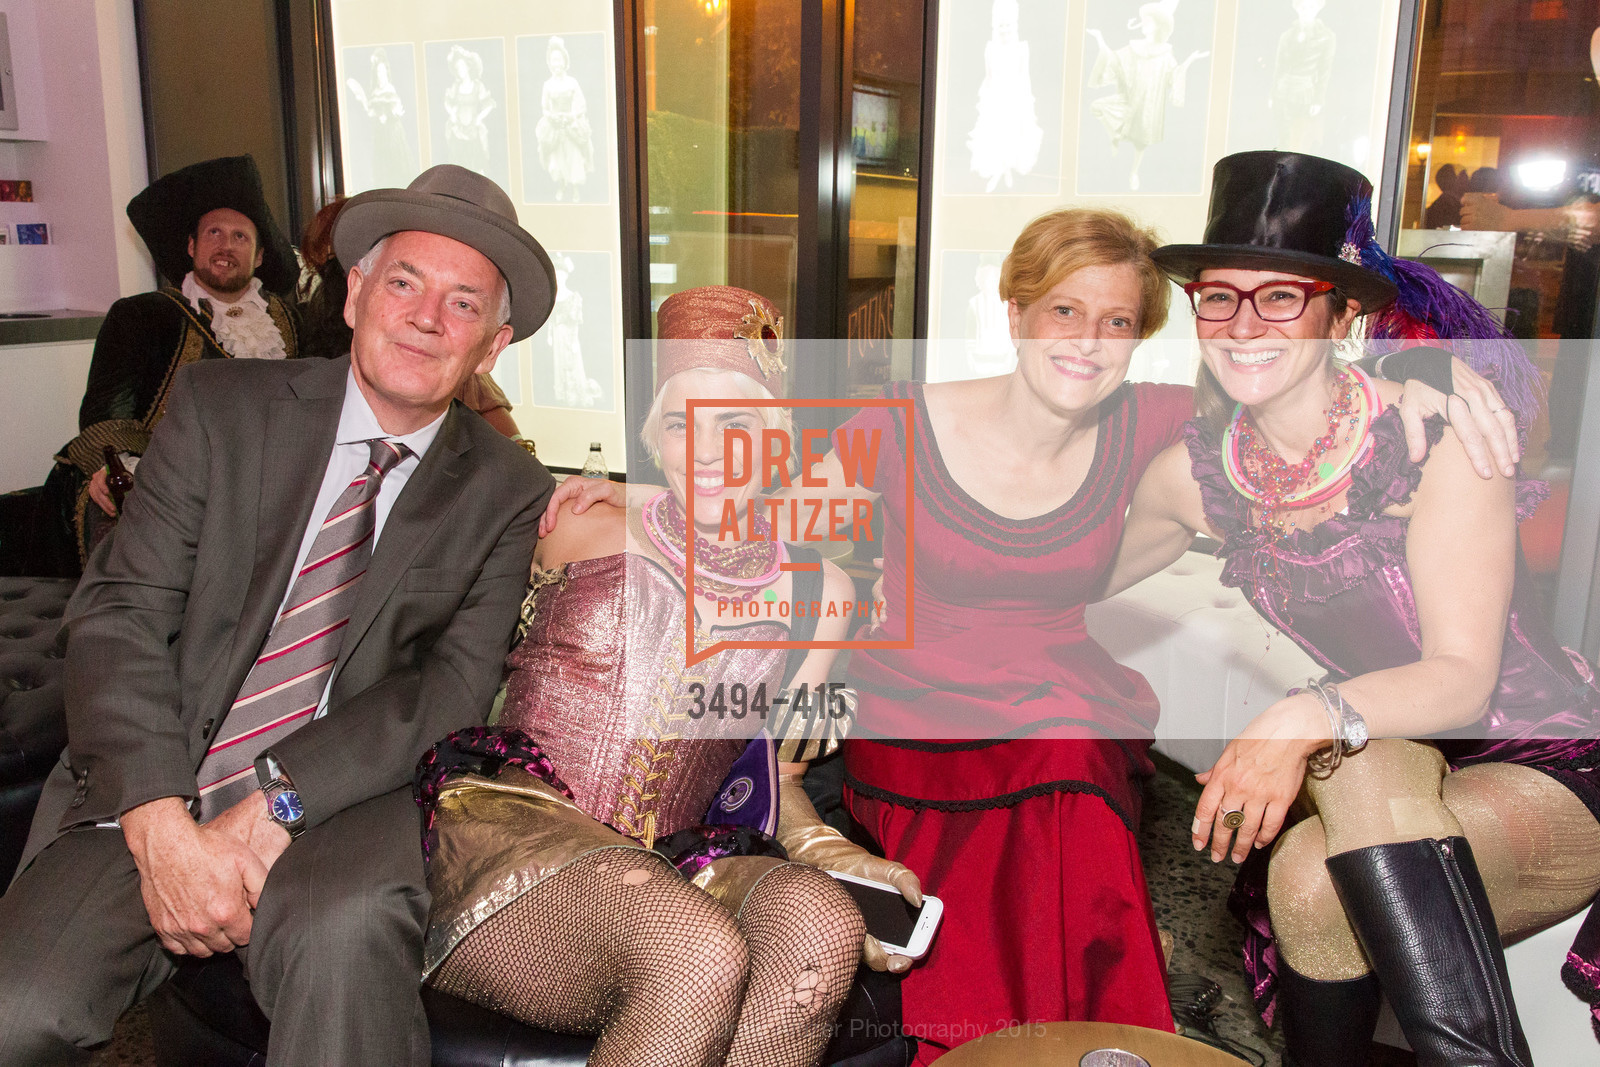 Anthony Giles, Adriana Permut, Carey Perloff, Elise Alexander, SPOOKED AT THE STRAND Presented by the American Conservatory Theater, The Strand Theater. 1127 Market Street, October 26th, 2015,Drew Altizer, Drew Altizer Photography, full-service event agency, private events, San Francisco photographer, photographer California